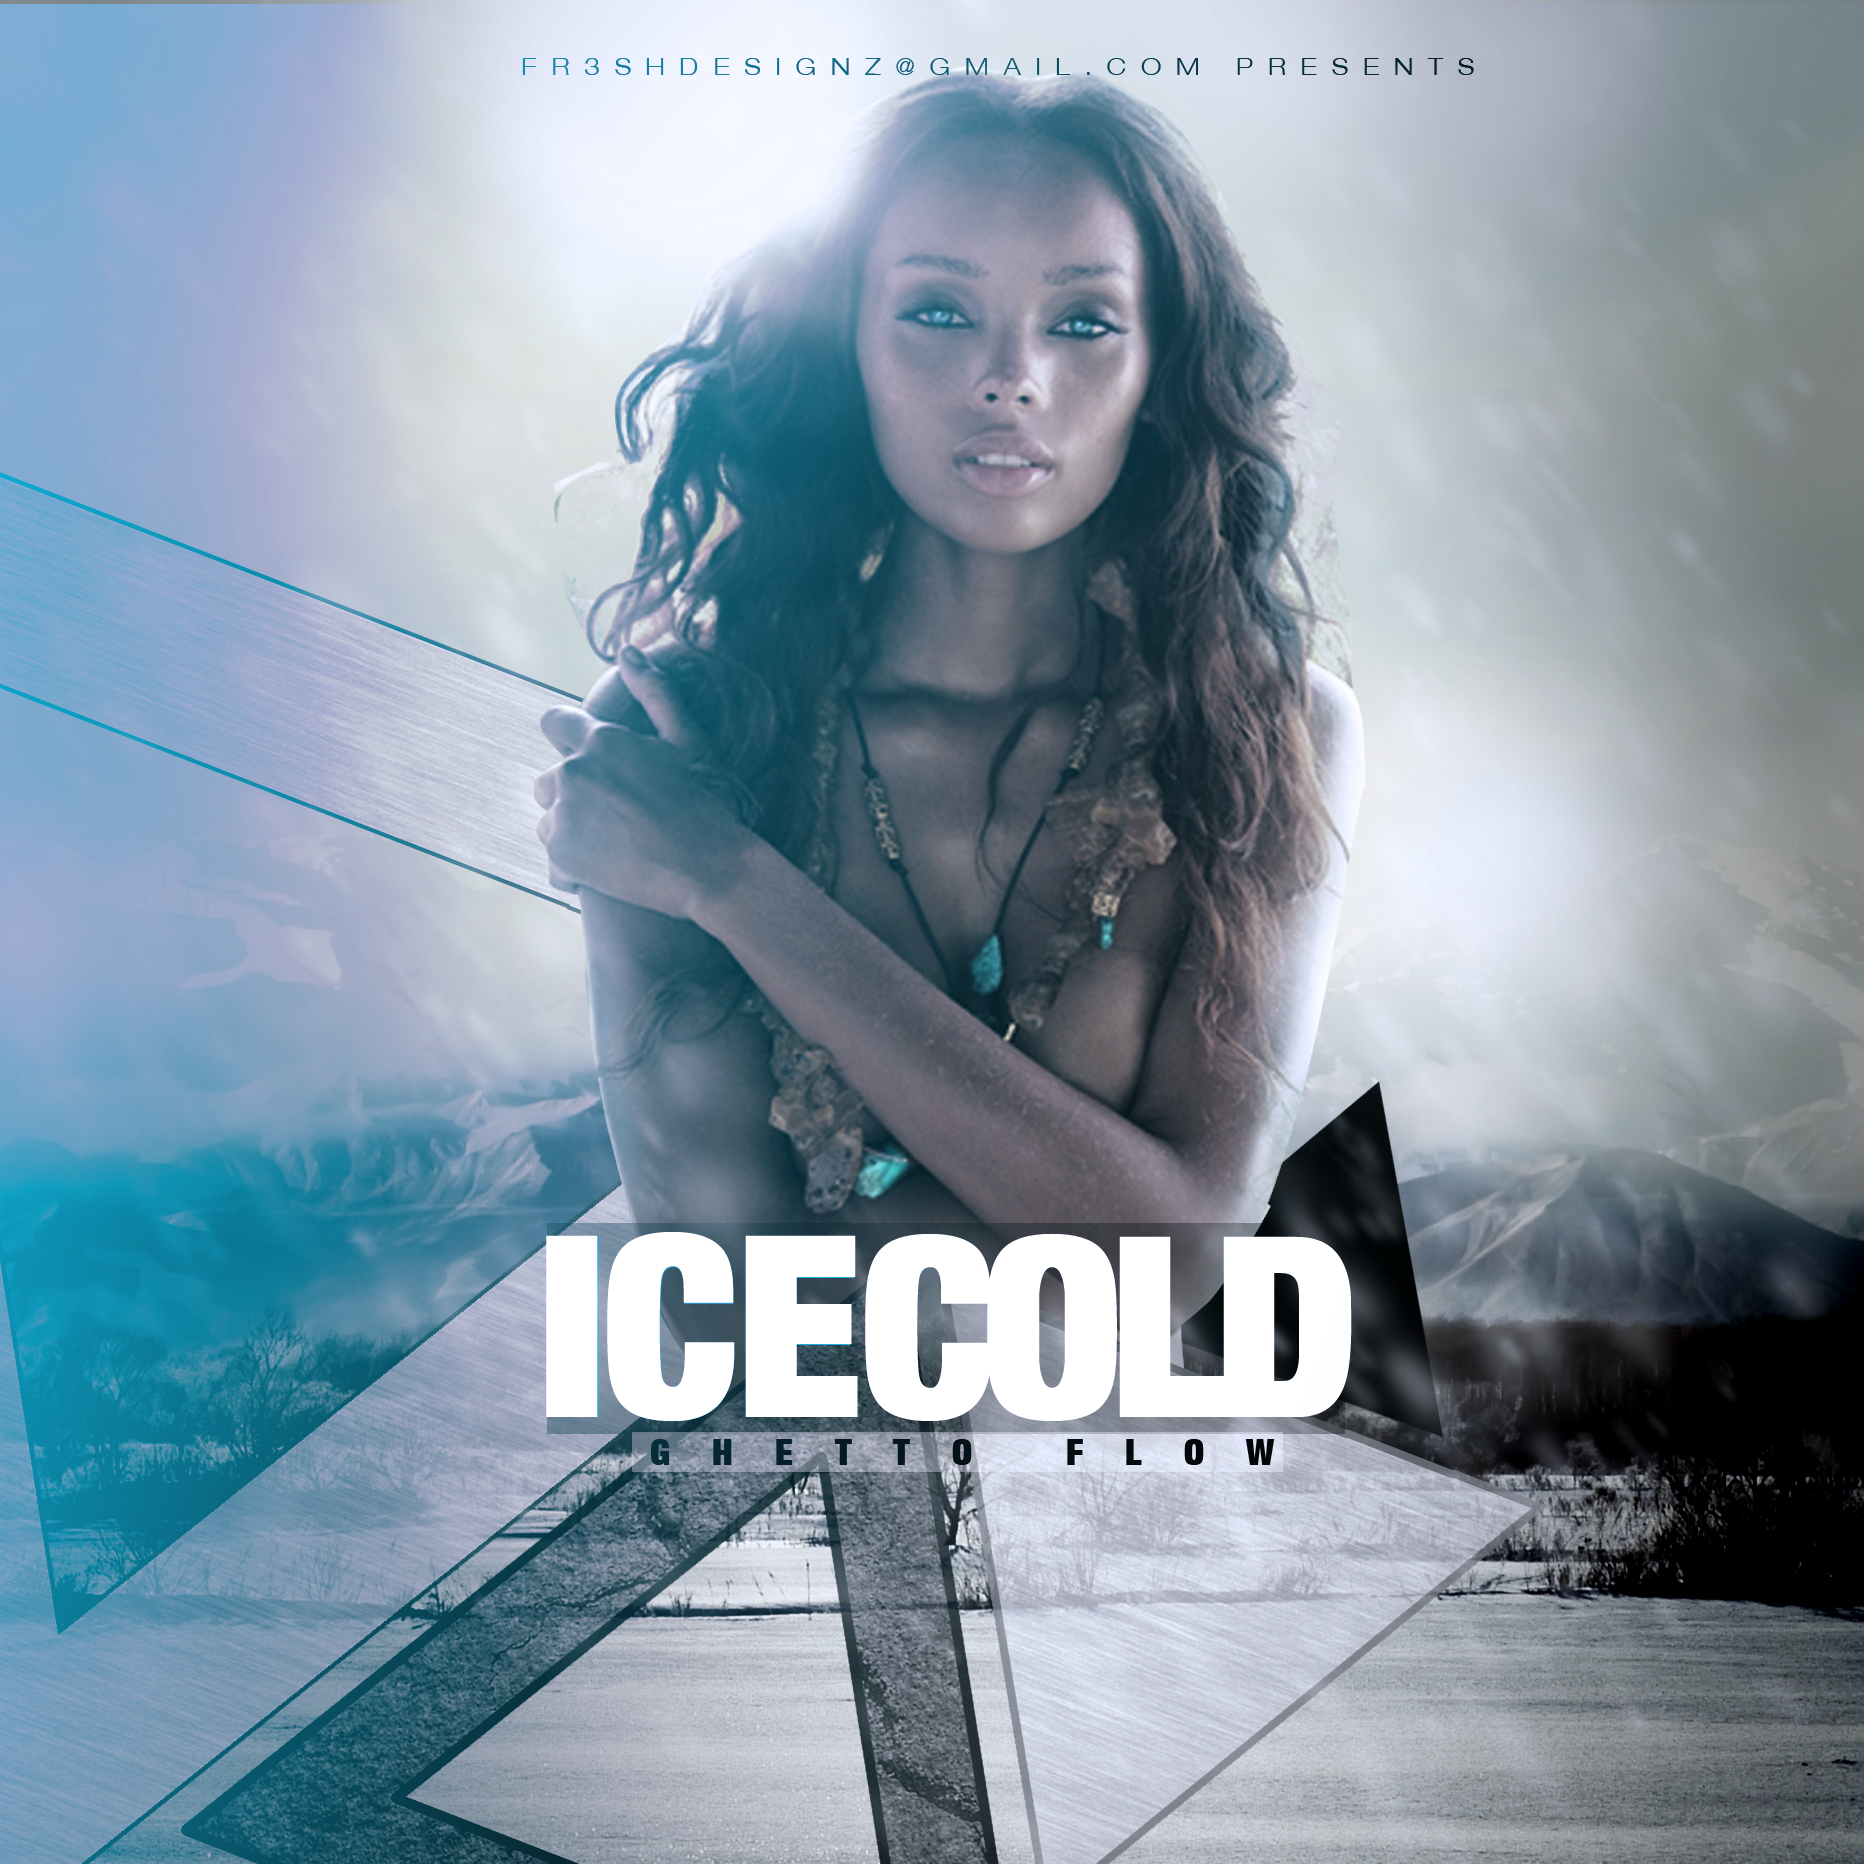 iCeCOLD